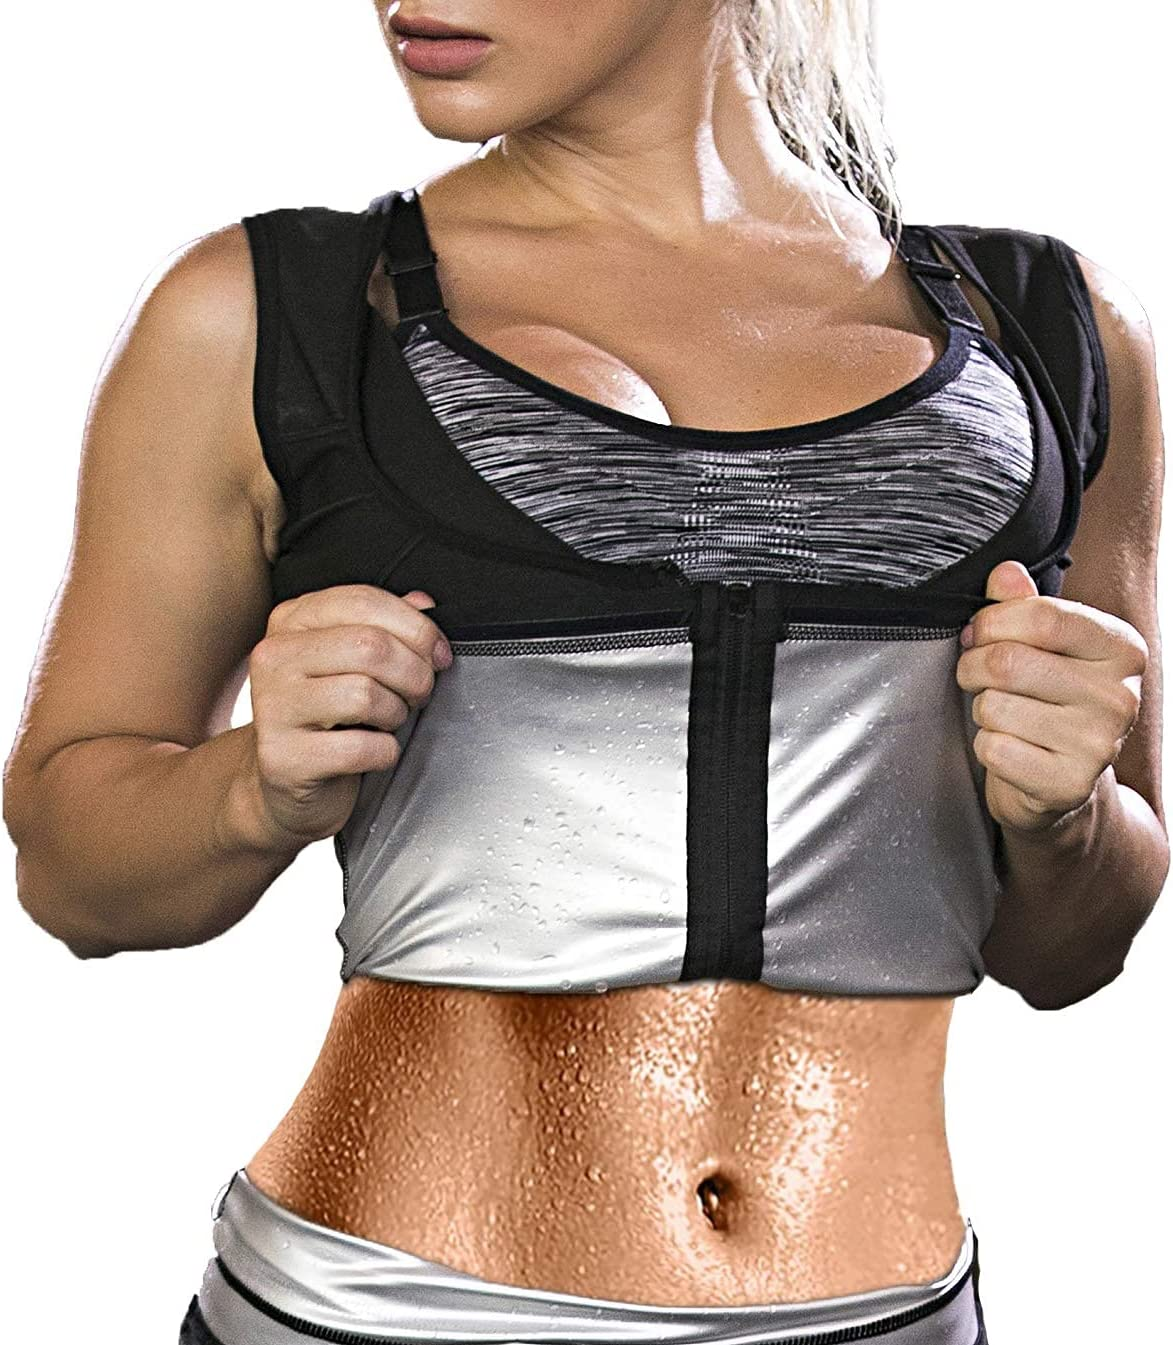 New popularity OMGREAT Women Factory outlet Hot Sweat Sauna Suit Slim Tank Top Workout Premium